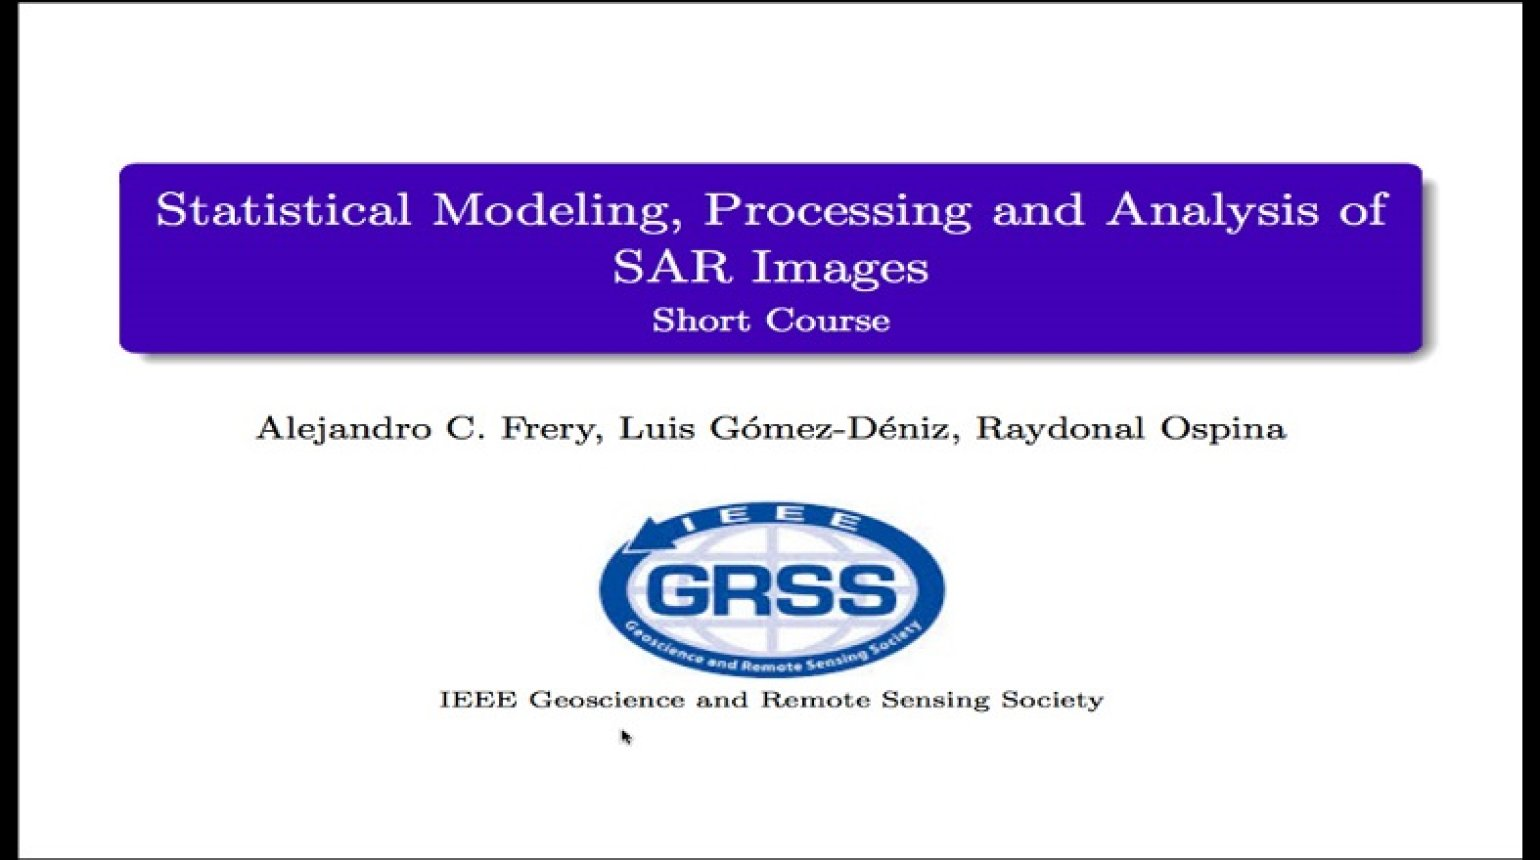 Statistical Modeling, Processing, and Analysis of SAR Images